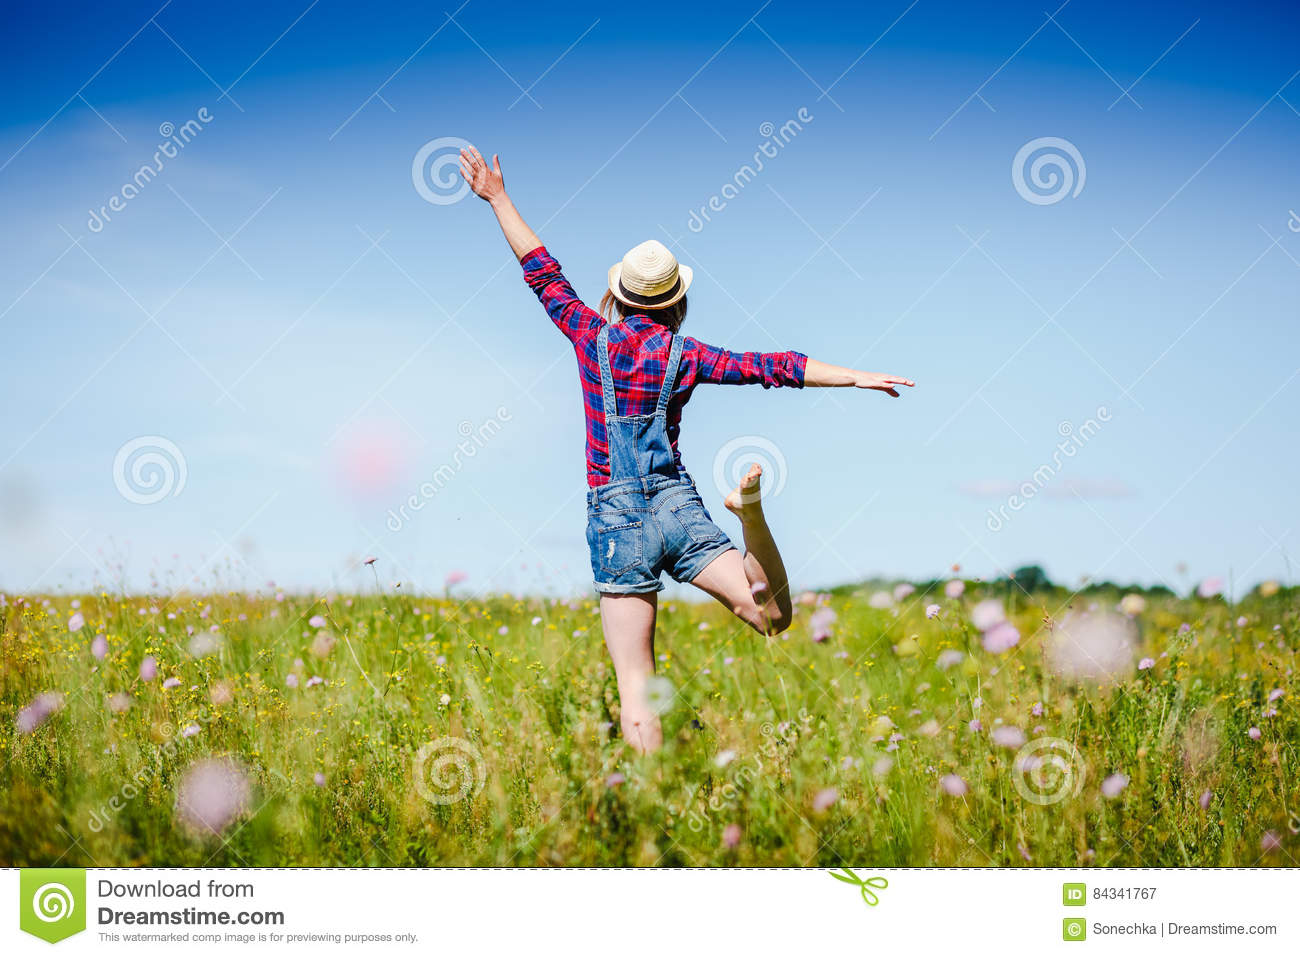 Happy woman in hat jumping in green field against blue sky